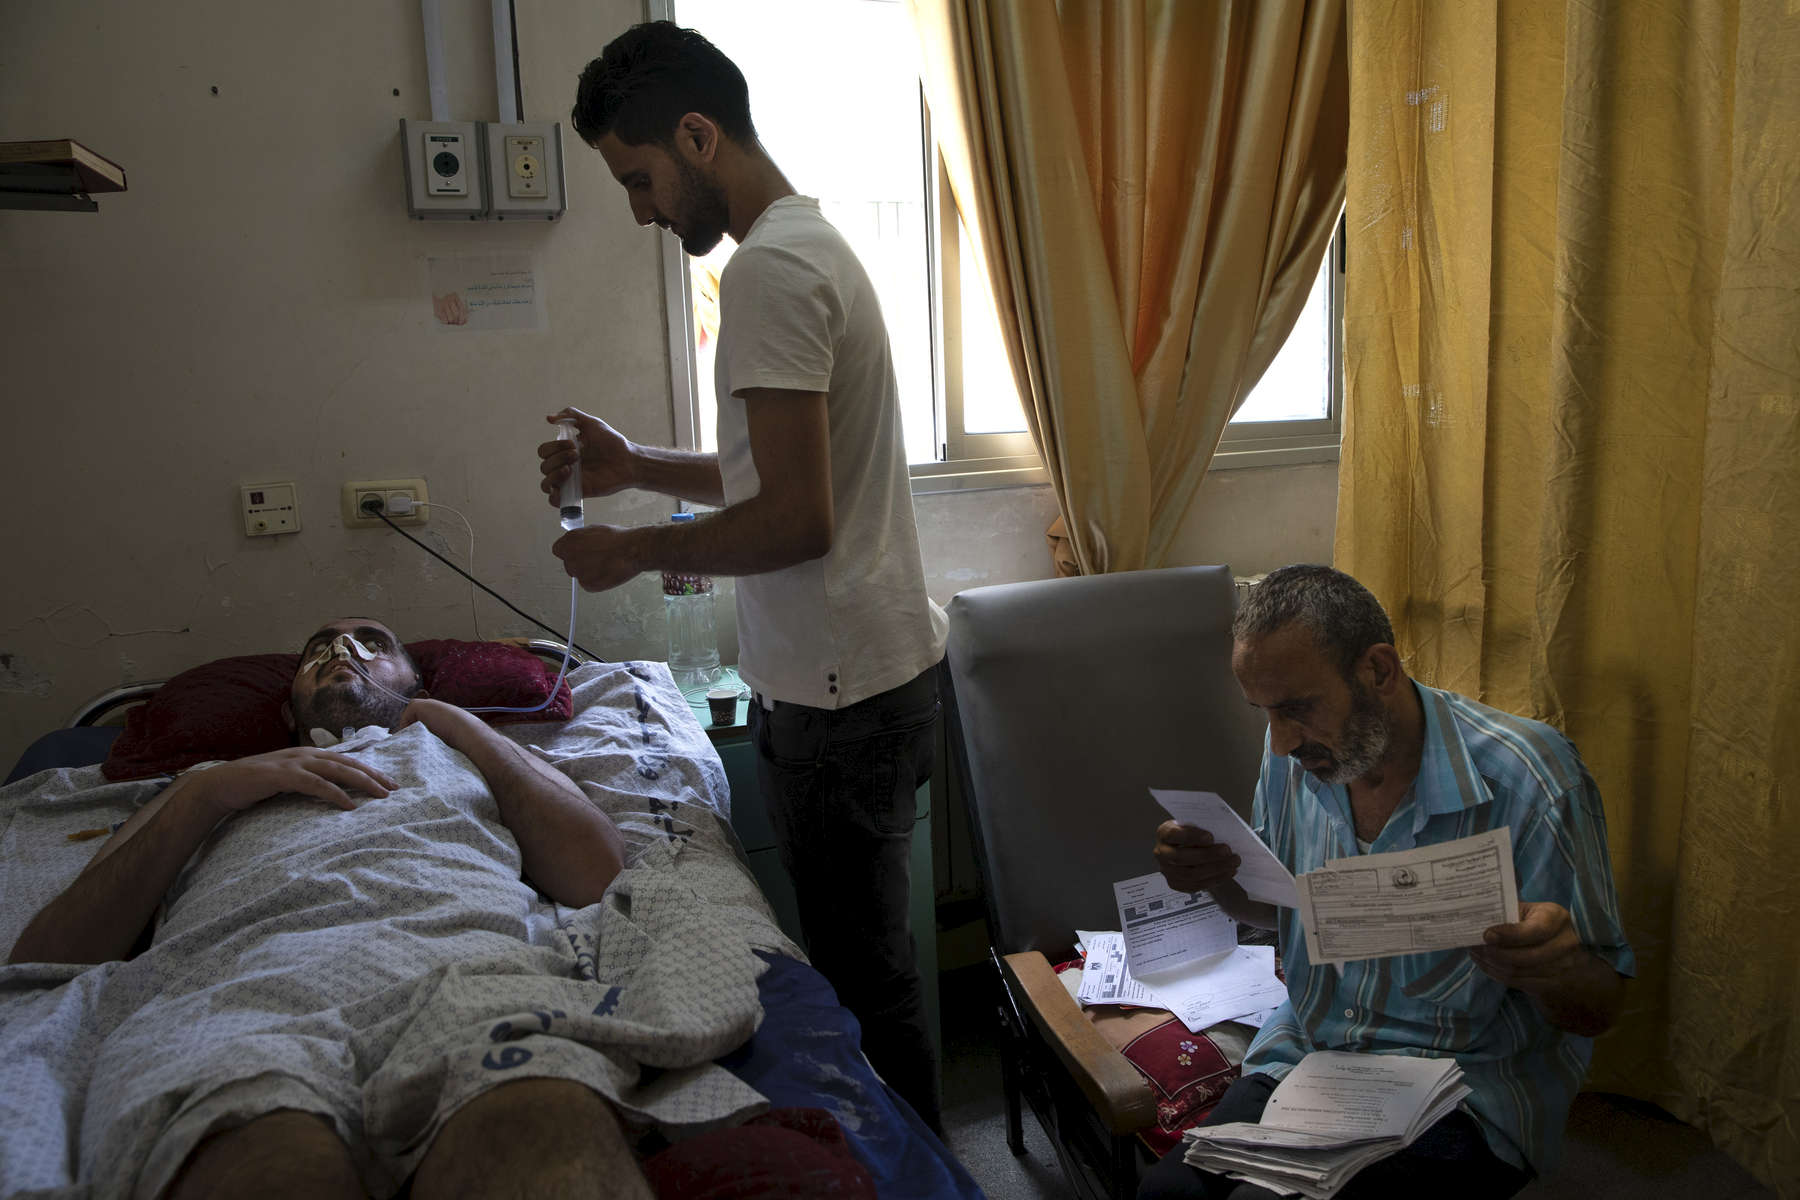 "GAZA CITY, GAZA STRIP- MAY 21,2018 Baraa' Hassan, 23,  suffers from a malignant brain tumor is seen at Rantisi hospital, one of the best medical facilities for Cancer,in Gaza city on May 21,2018. His case is serious, he was transferred to Hebron Hospital underwent a surgery to remove a part of the tumor. After the surgery he fell in a coma lasted for 45 days. His family still waits the Israeli permit under the pretext of ""security check"".   six months without response. His brother: Anas Hassan. on May 21,2018 in Gaza city, Gaza strip. He was shot by twice in his leg at close range with explosive bullets, one in his upper thigh and the other under his knee on May 3rd. He was climbing the Israeli border fence when he was severely injured. The Israel soldiers decided to see his life, dragging him through the border fence, then he was flown to Soroka hospital in Beer Shaba, Israel where he spent 16 days in Intensive care, his leg was amputated there as well. The Israeli military (IDF) started using new weaponry, explosive bullets that shatter bones, tissue, destroying veins and arteries, the aim is to create a handicapped community, especially amongst the young male population. Many of the wounded protesters have to undergo multiple surgeries to try to save their limbs, and in some cases amputation is the only solution. Everyone is well aware that Gaza's two million inhabitants are trapped in a cycle of violence and poverty, created by policies and political decisions on both sides. The problems and complications affecting Gaza today are overwhelming. The world, seemingly accustomed to the suffering of the Gazan people turns a blind eye. (Photo by Paula Bronstein )"